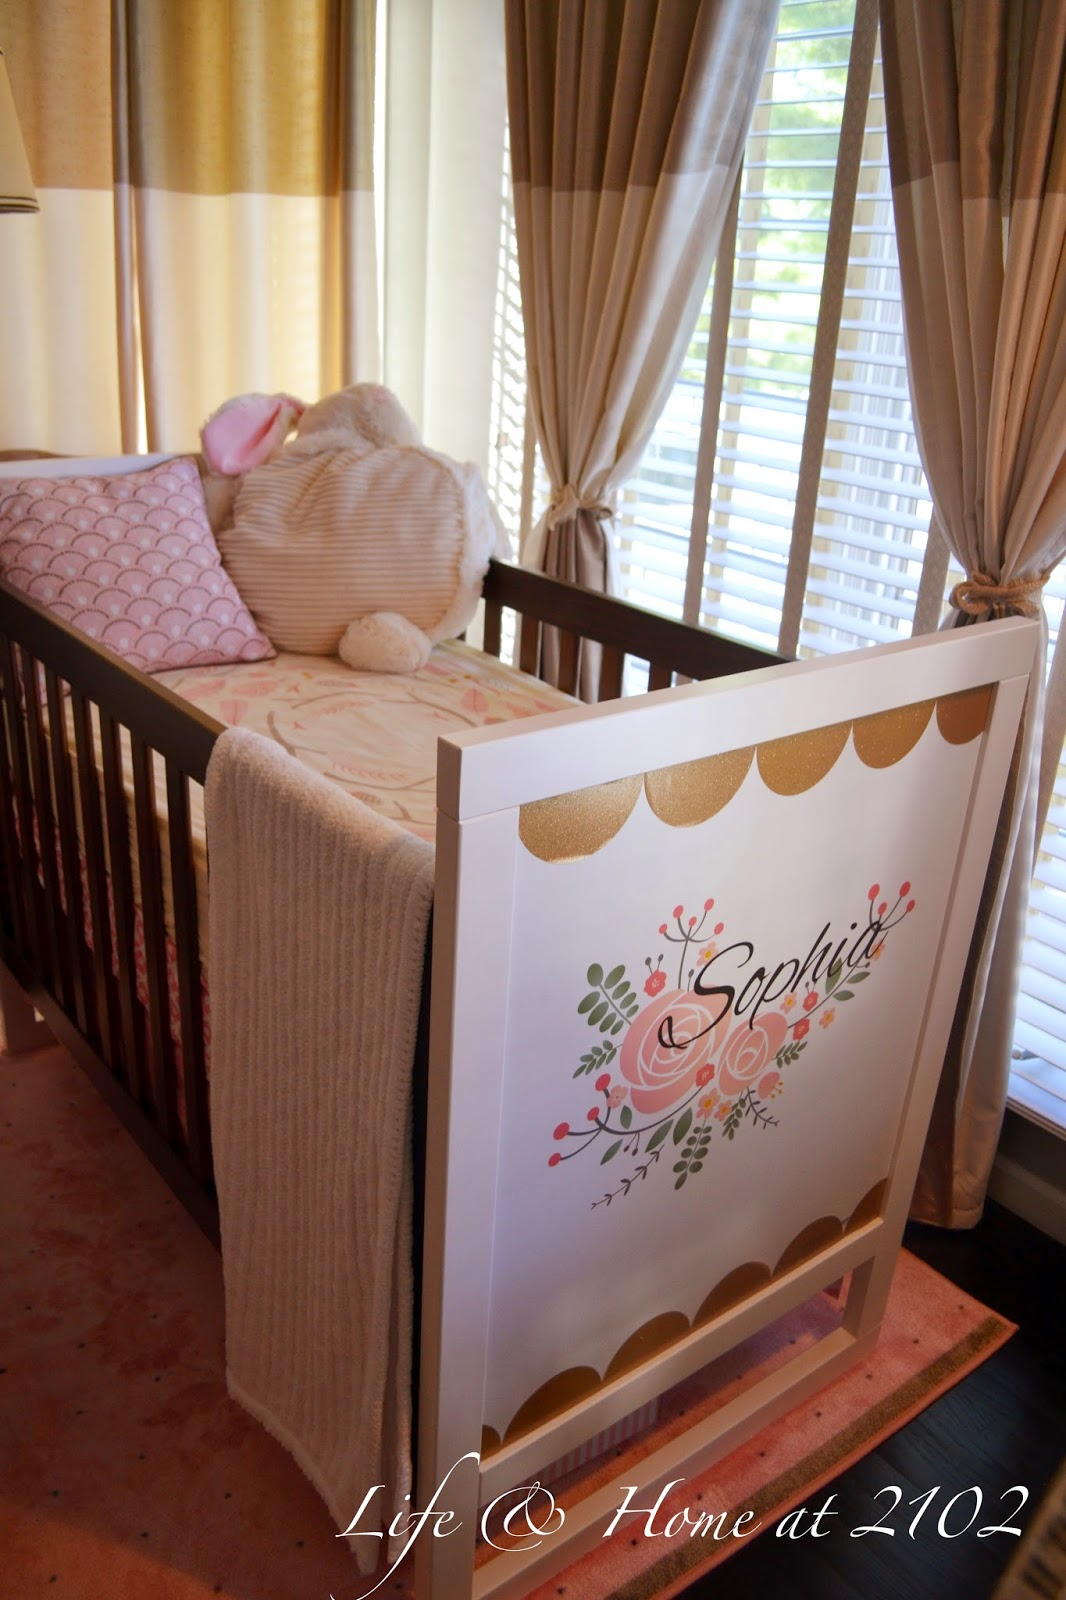 Life home at 2102 final touches in the master bedroom for Master bedroom with crib ideas